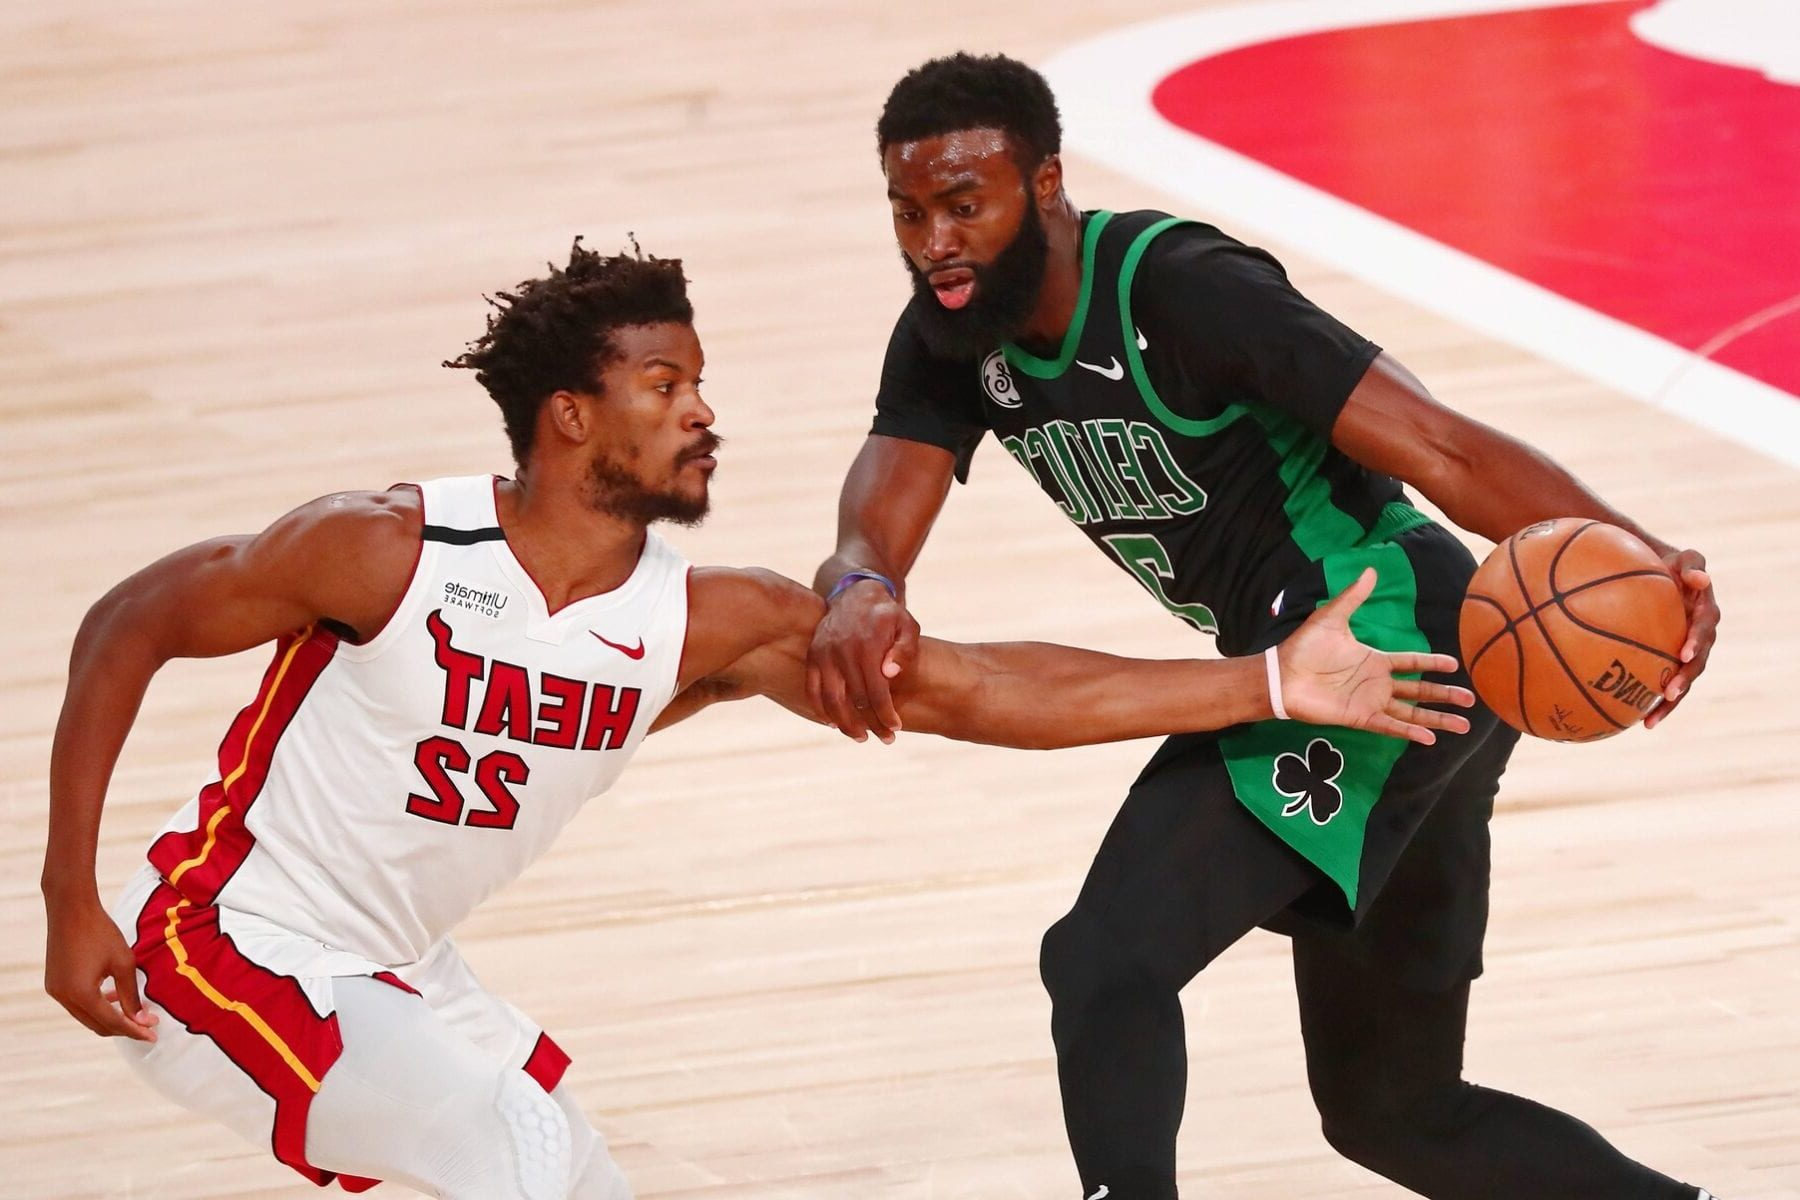 Heats up vs Celtics, Game 3: Full Betting Insights + How to Bet Quickly & Easily